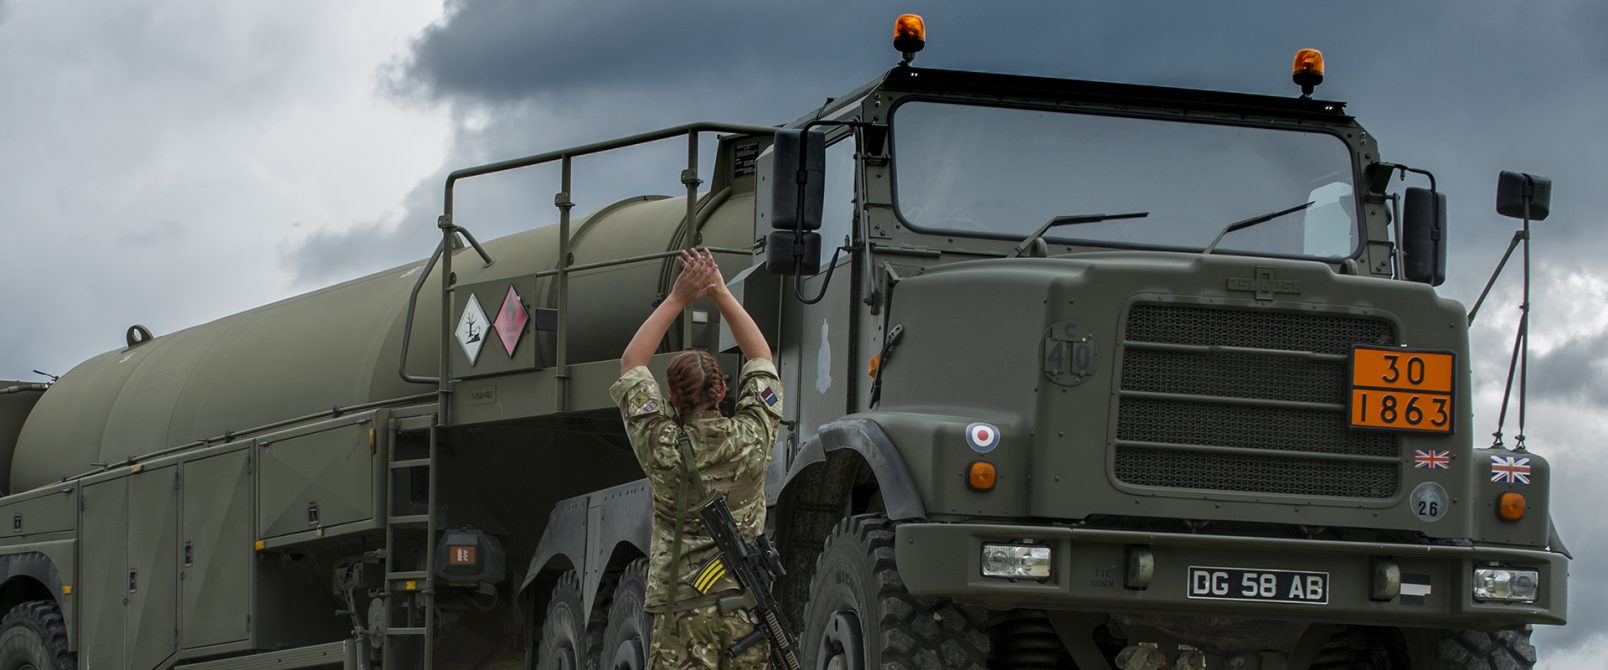 Tactial Supply Wing of the Royal Air Force get a Fuel Truck into postion to await incoming Helicopters for refueling during Exercise Swift Responce.